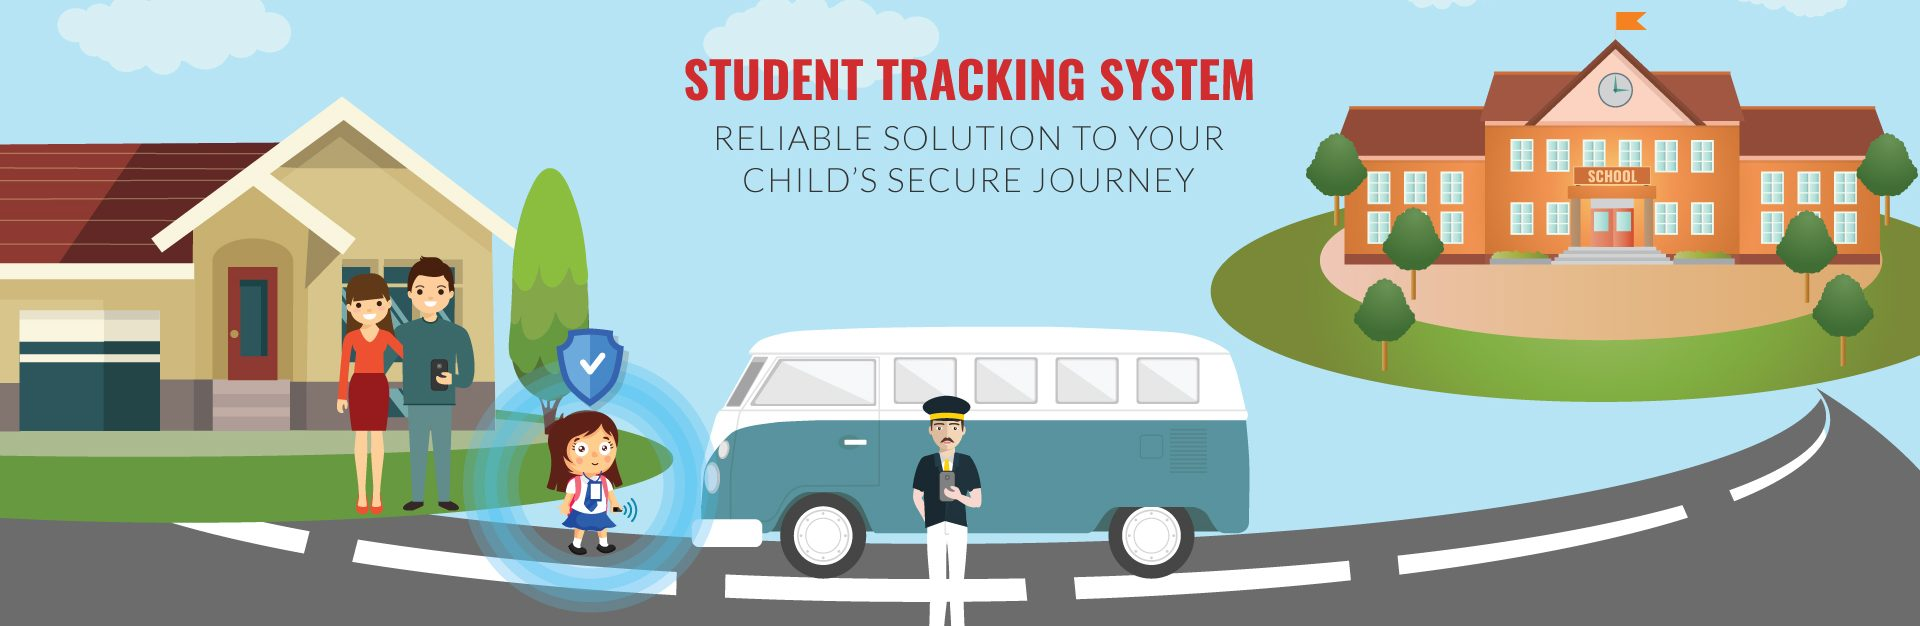 Student Tracking System - School Cop